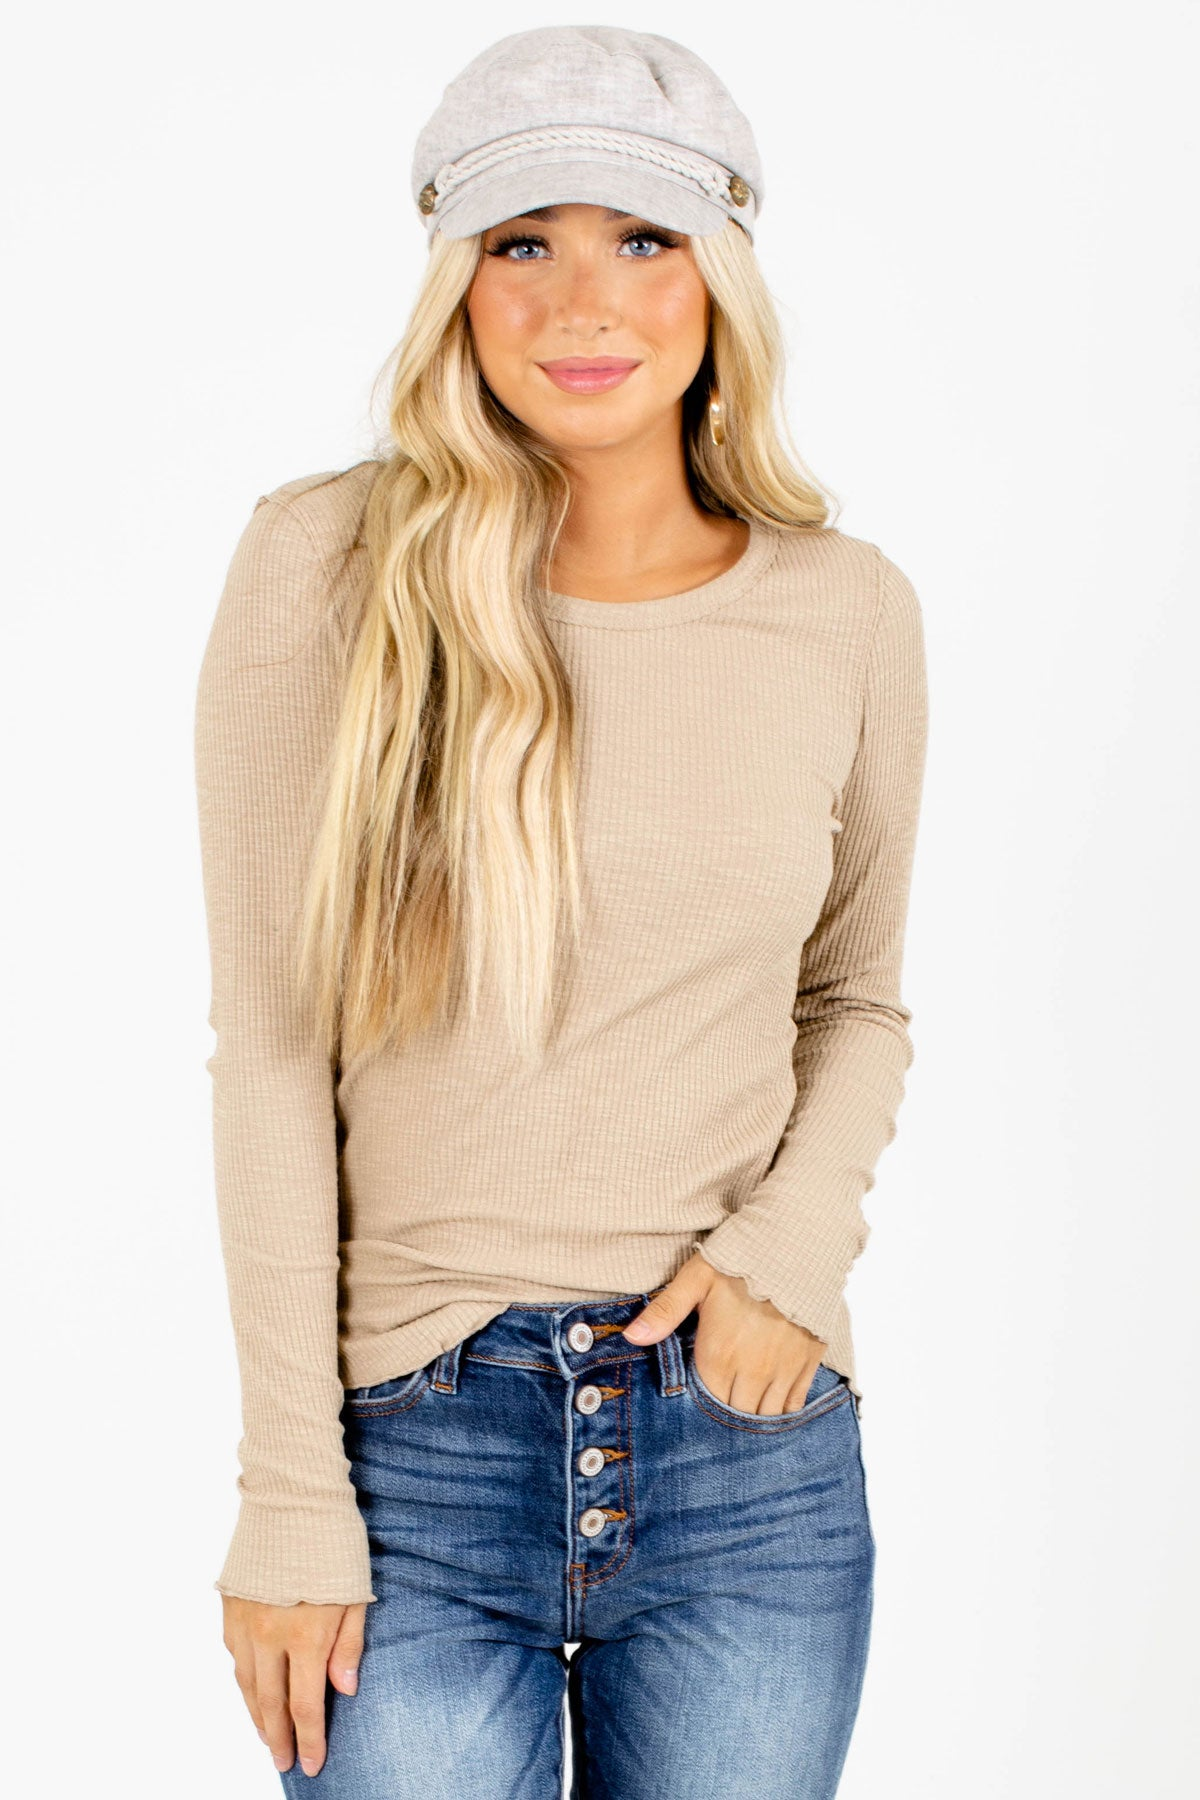 Taupe Round Neckline Boutique Tops for Women